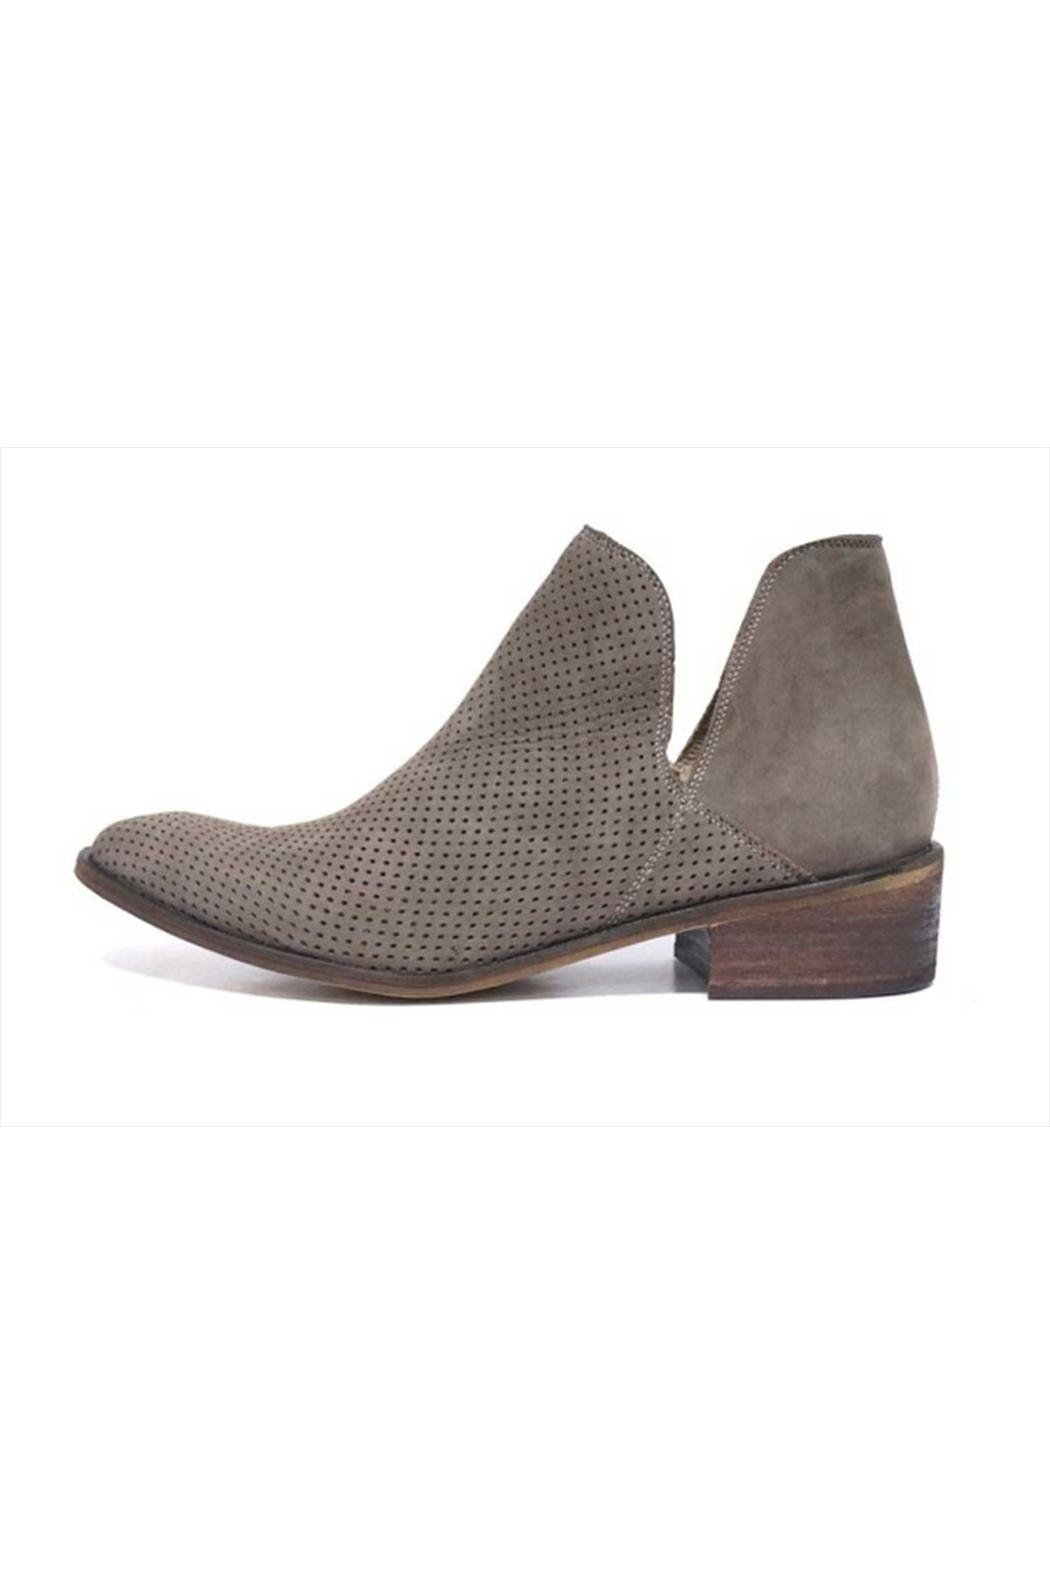 Kaanas Thar Taupe Booties - Front Full Image